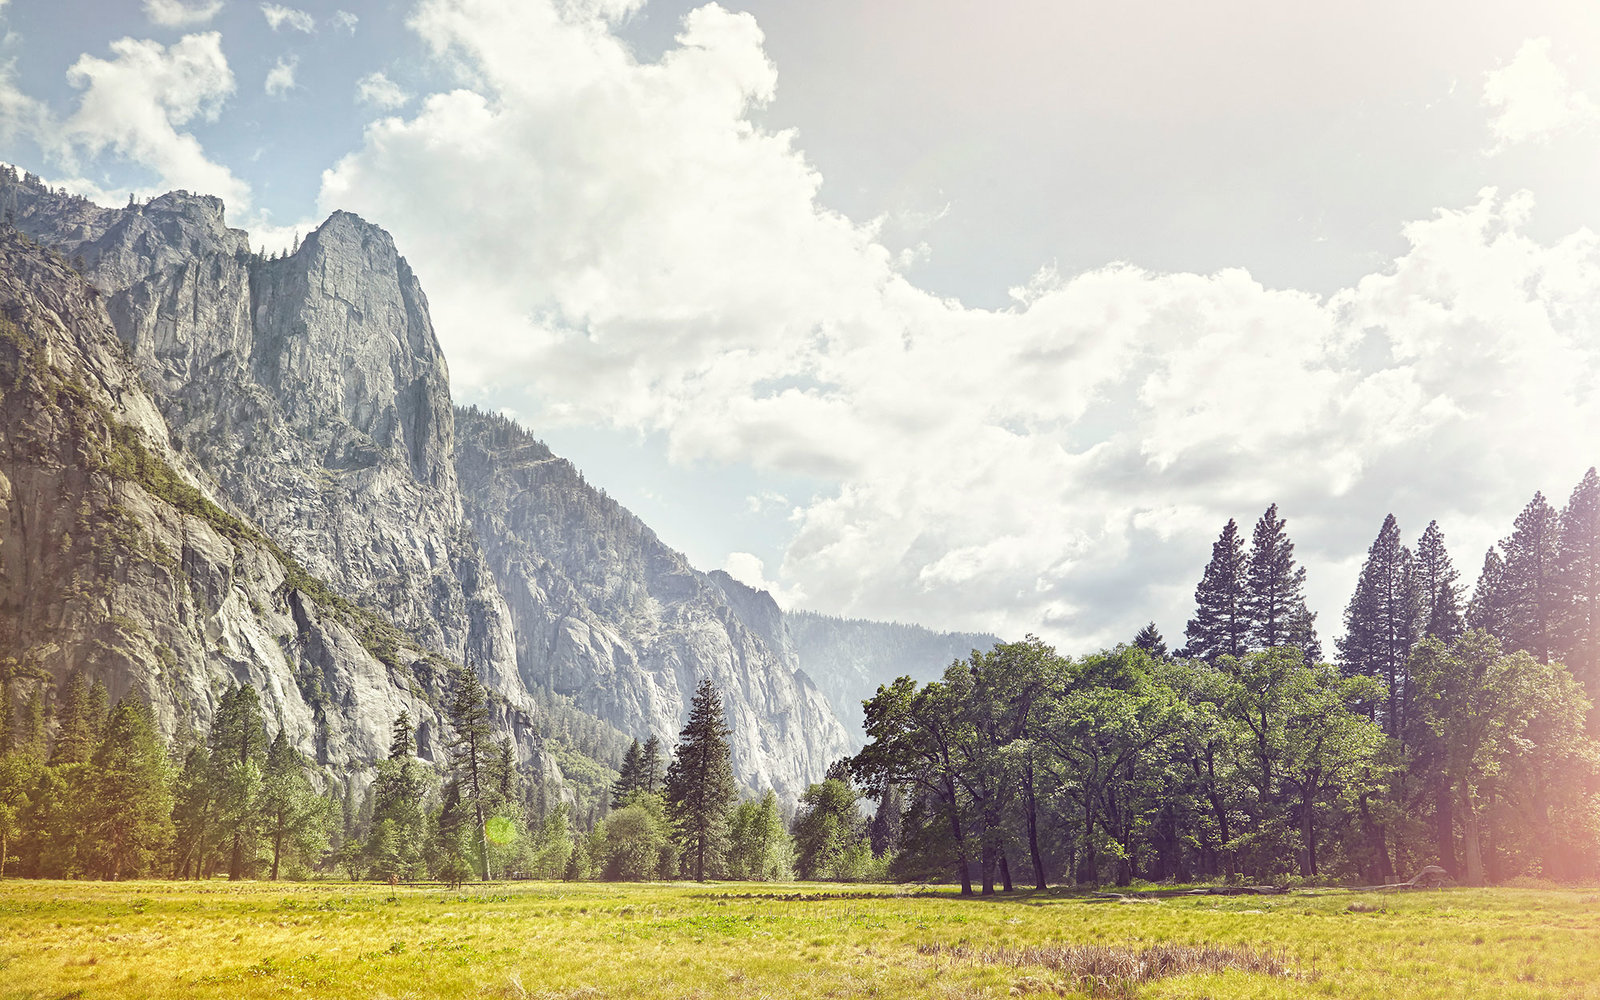 Yosemite National Park Forced to Change Names of Landmark Lodges